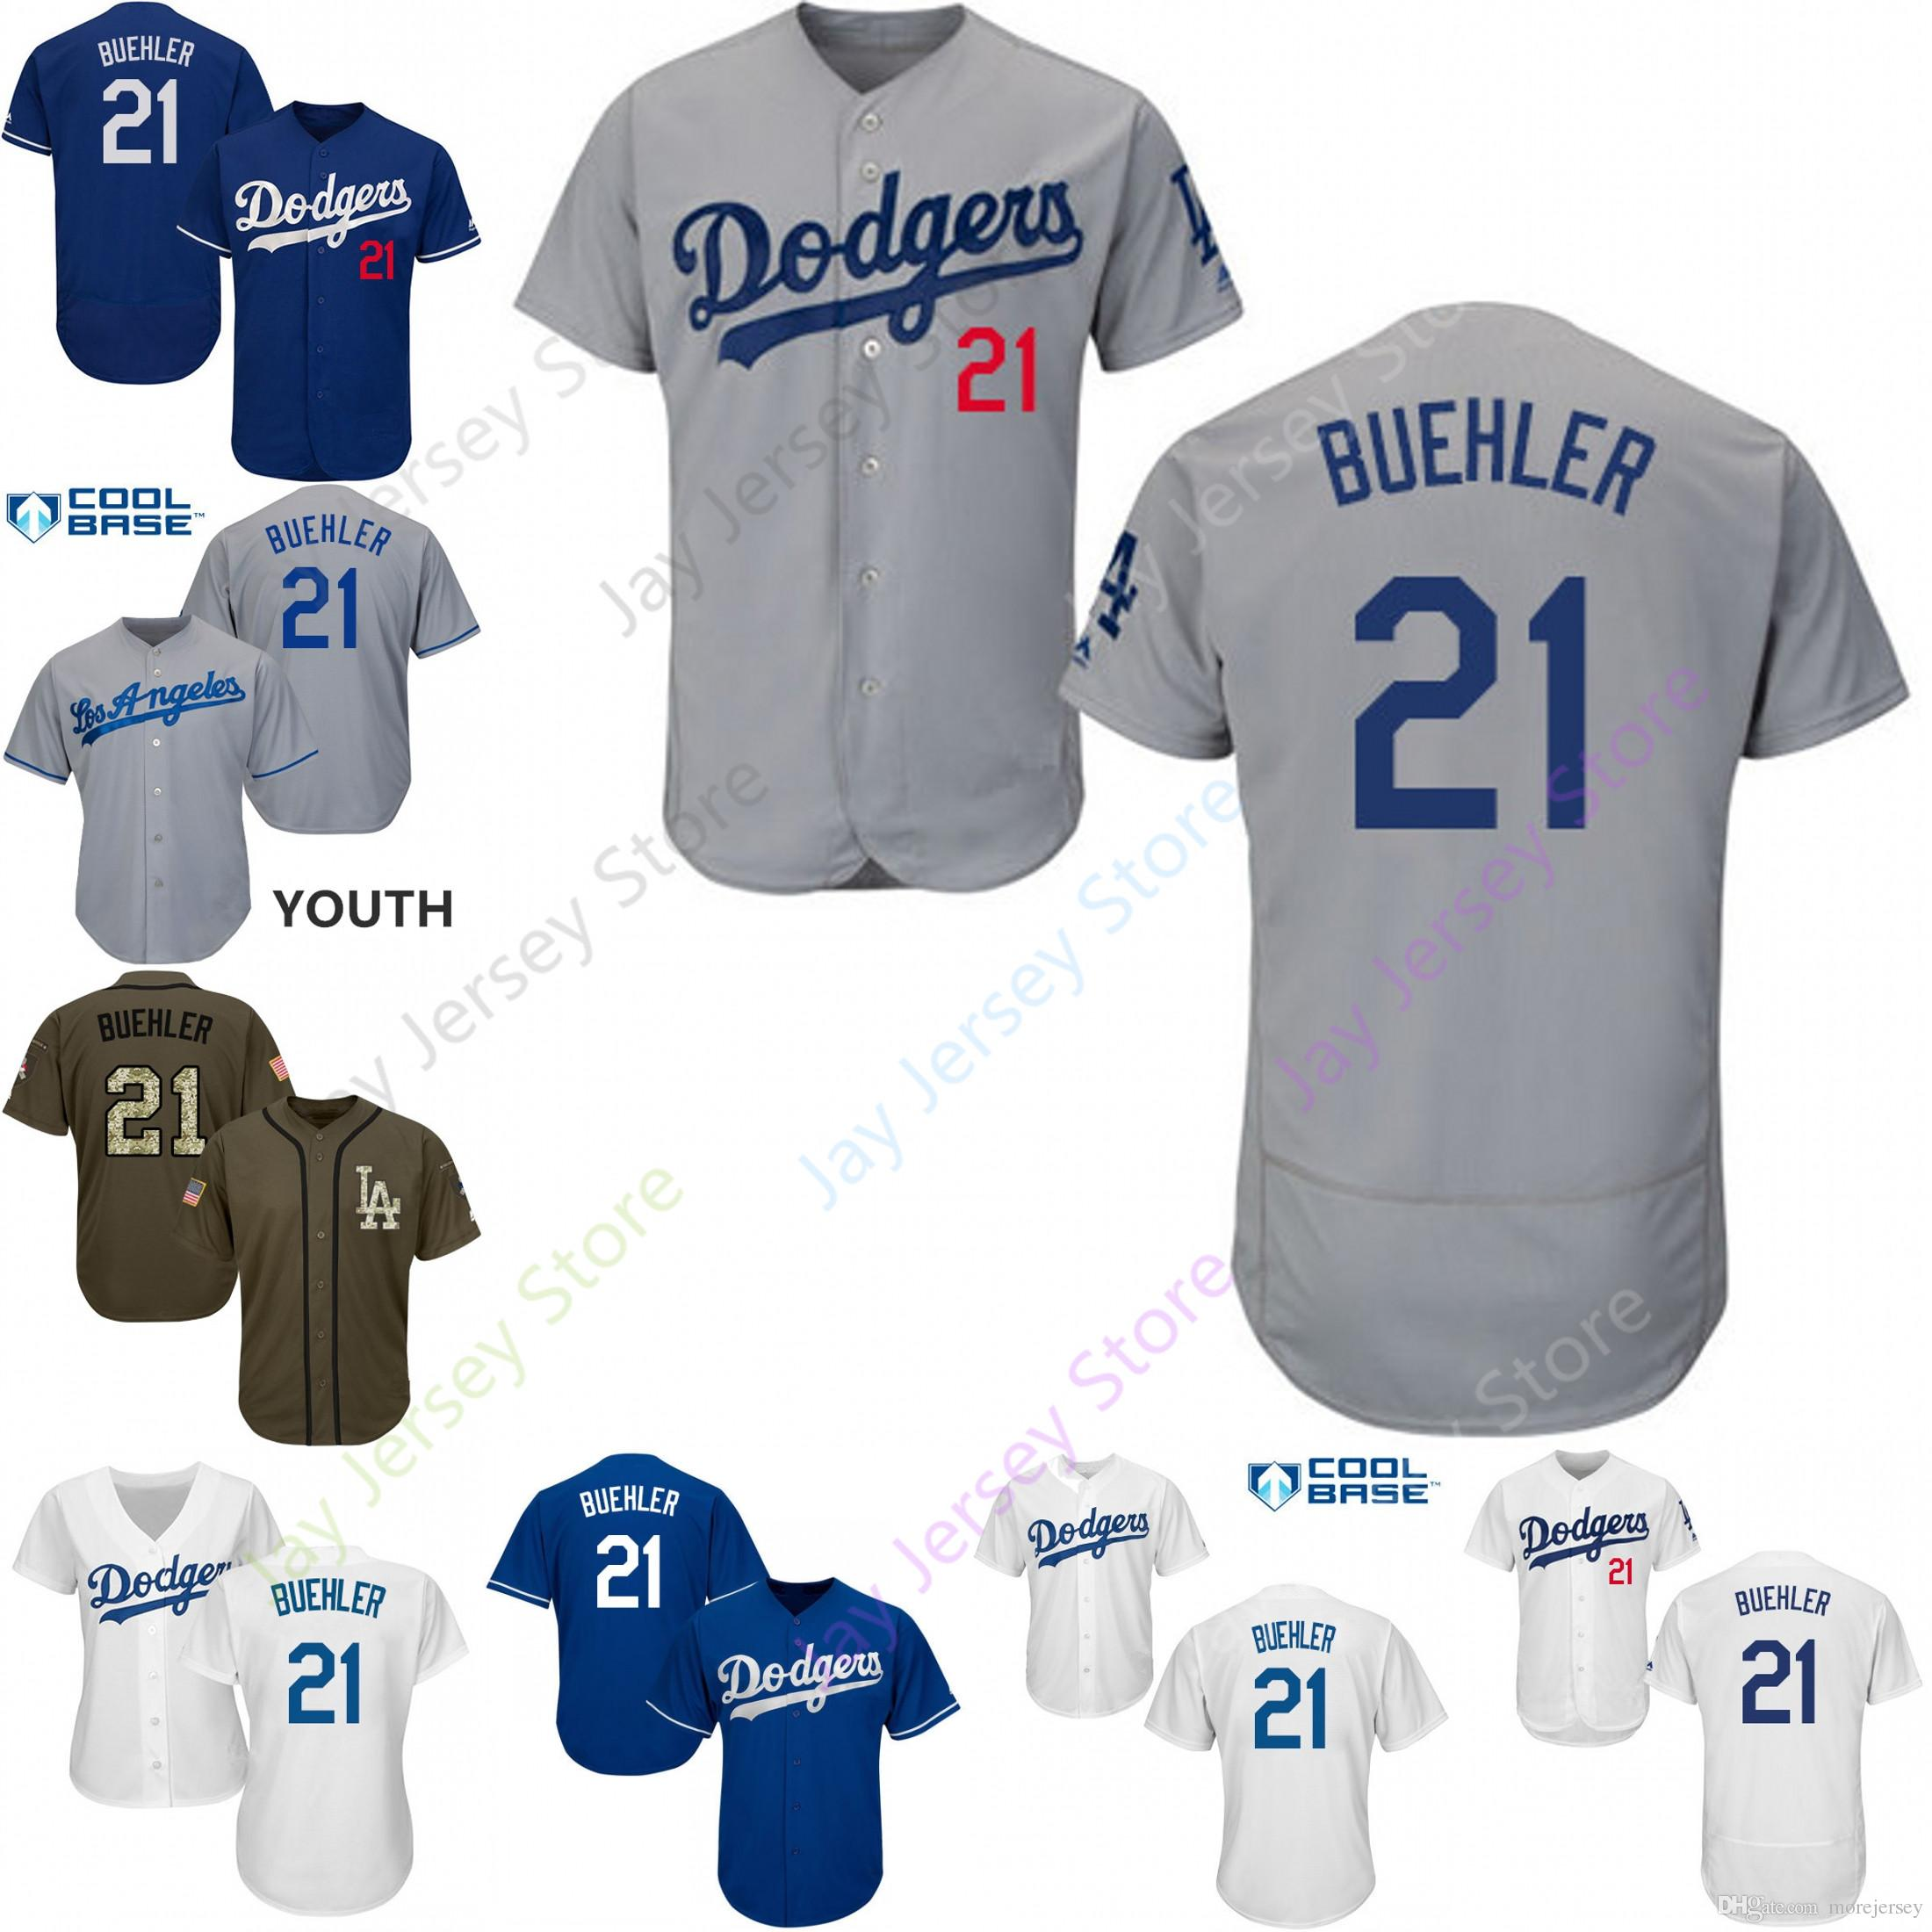 newest collection 2aaec 176a5 2019 Los Angeles 21 Walker Buehler Jersey Dodgers Jerseys Cool Base  Flexbase Home Away White Black Red Grey Pullover Button Men Women Youth